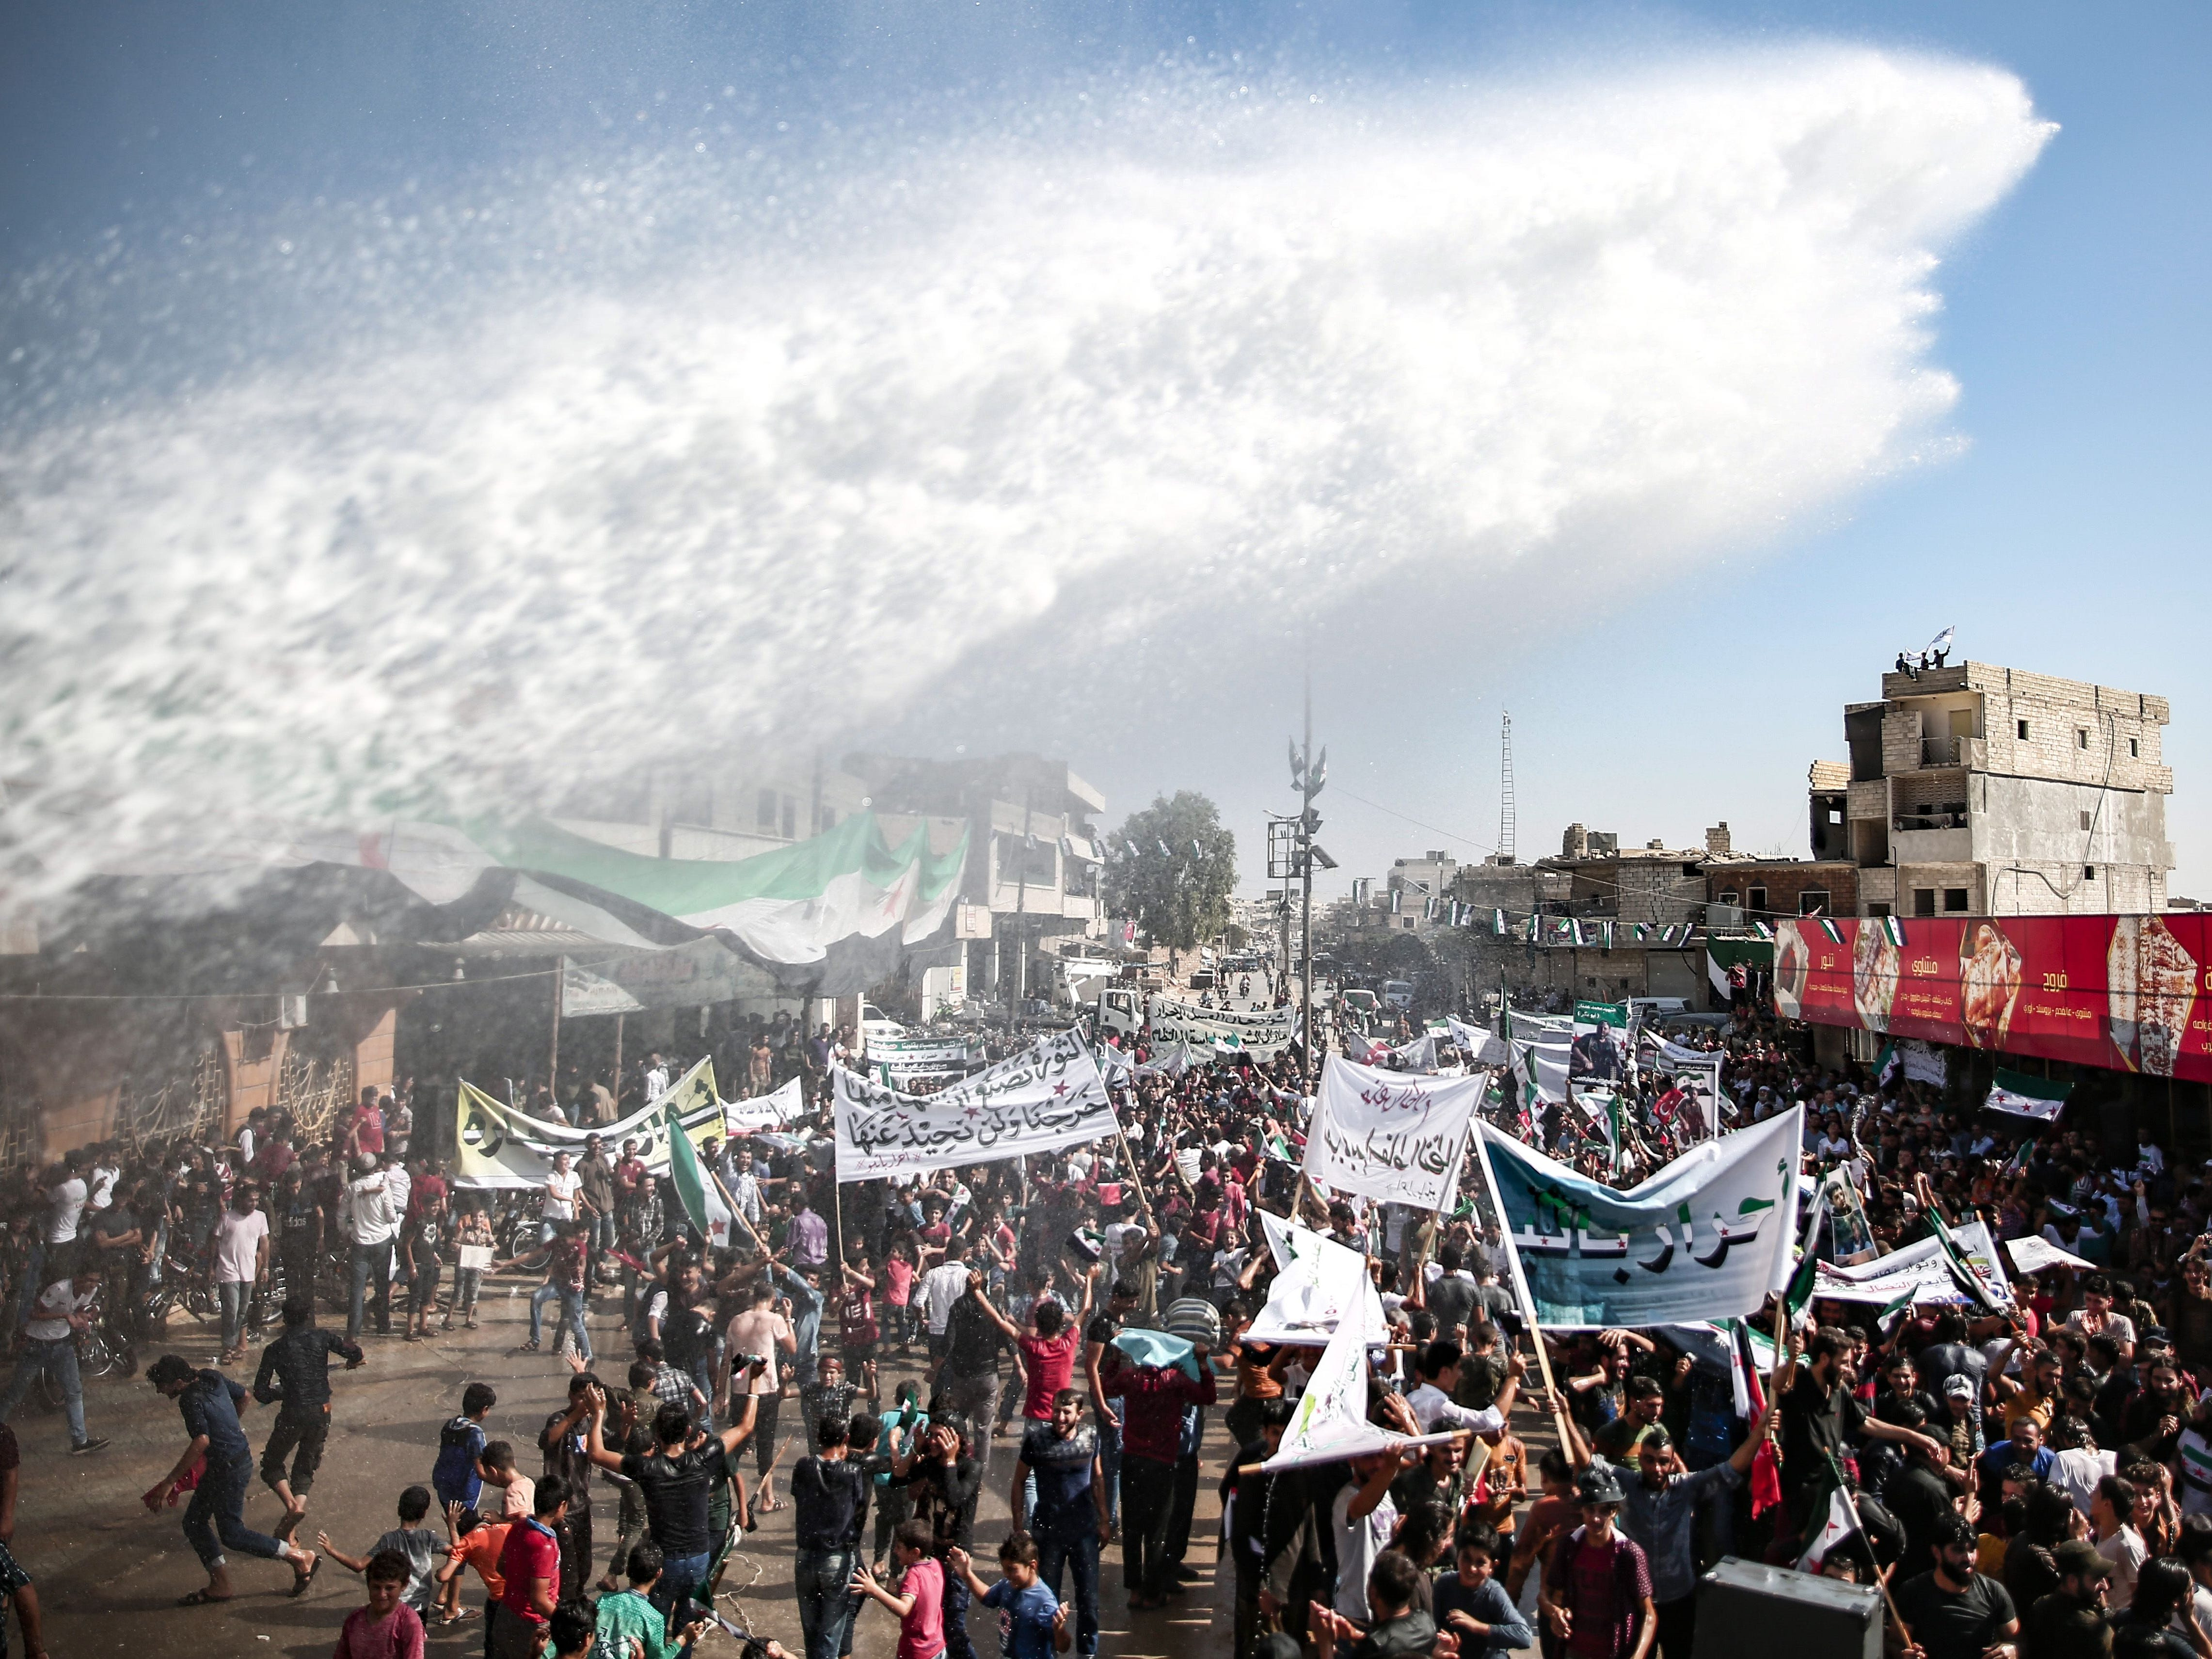 Water is sprayed to cool down Syrian protesters calling for the release of those held in its prisons, in the rebel-held town of Atareb, Aleppo, Syria, on Sept. 28, 2018.